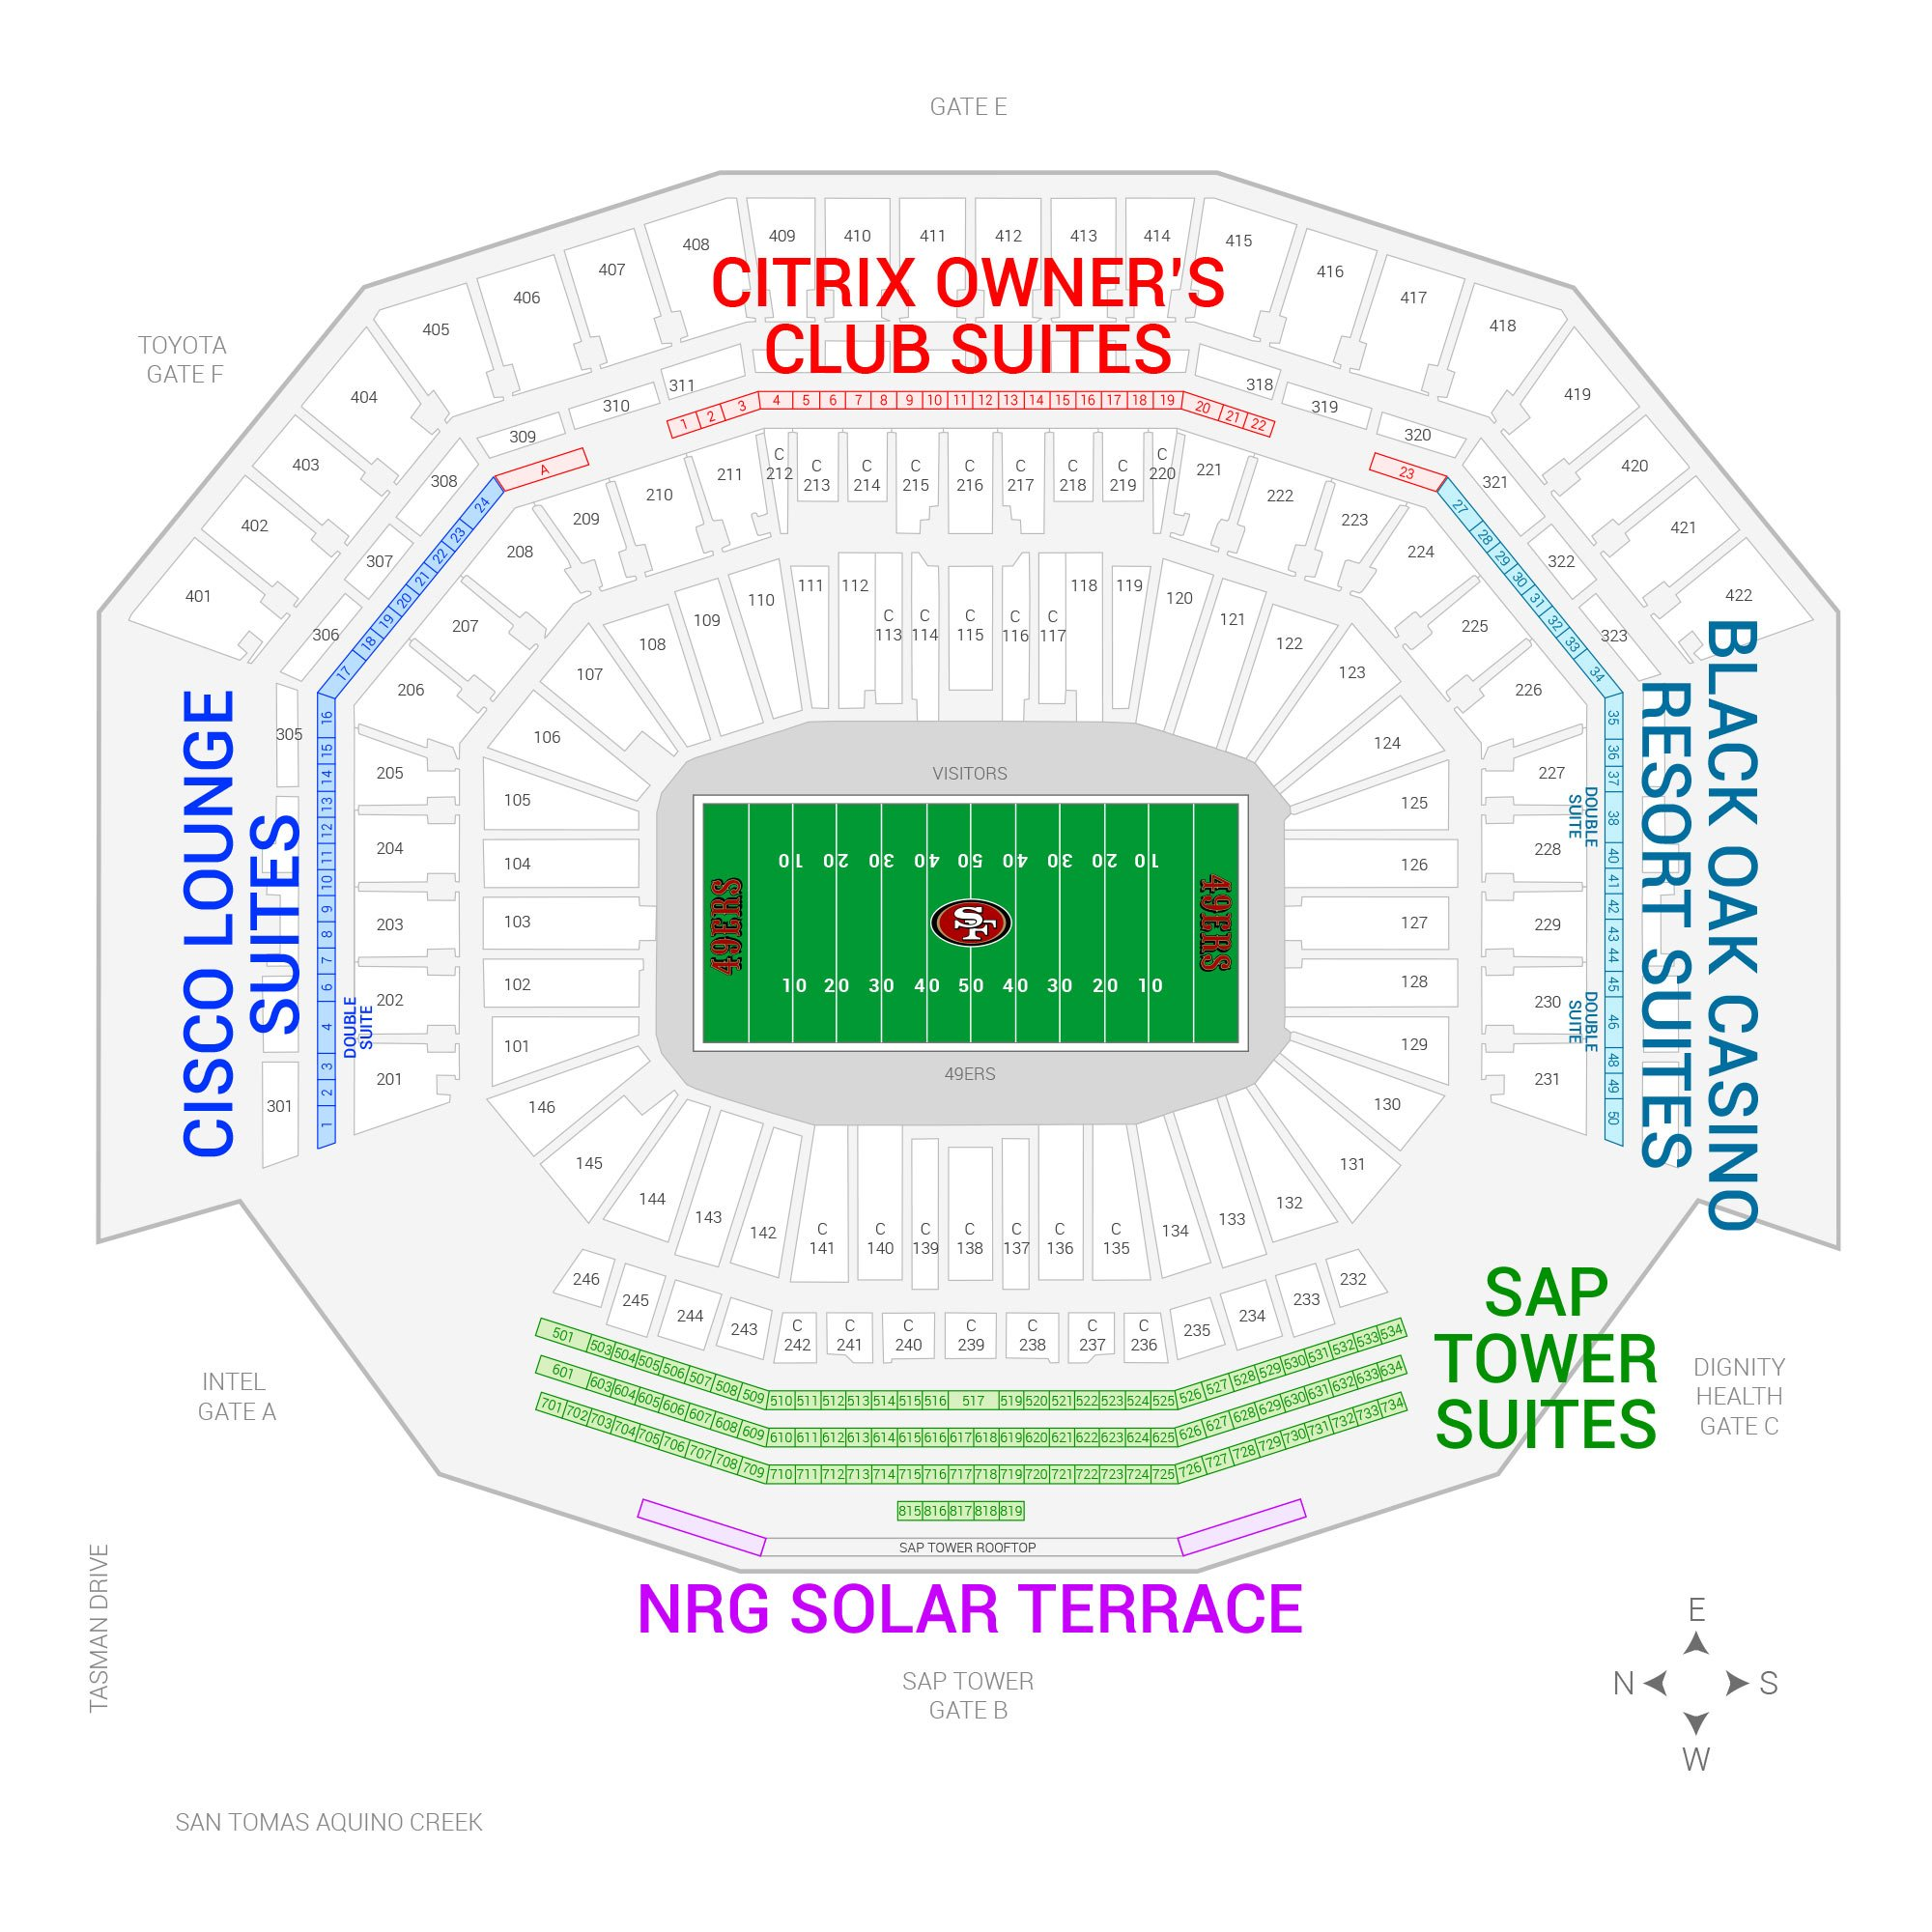 Levi's Stadium / San Francisco 49ers Suite Map and Seating Chart